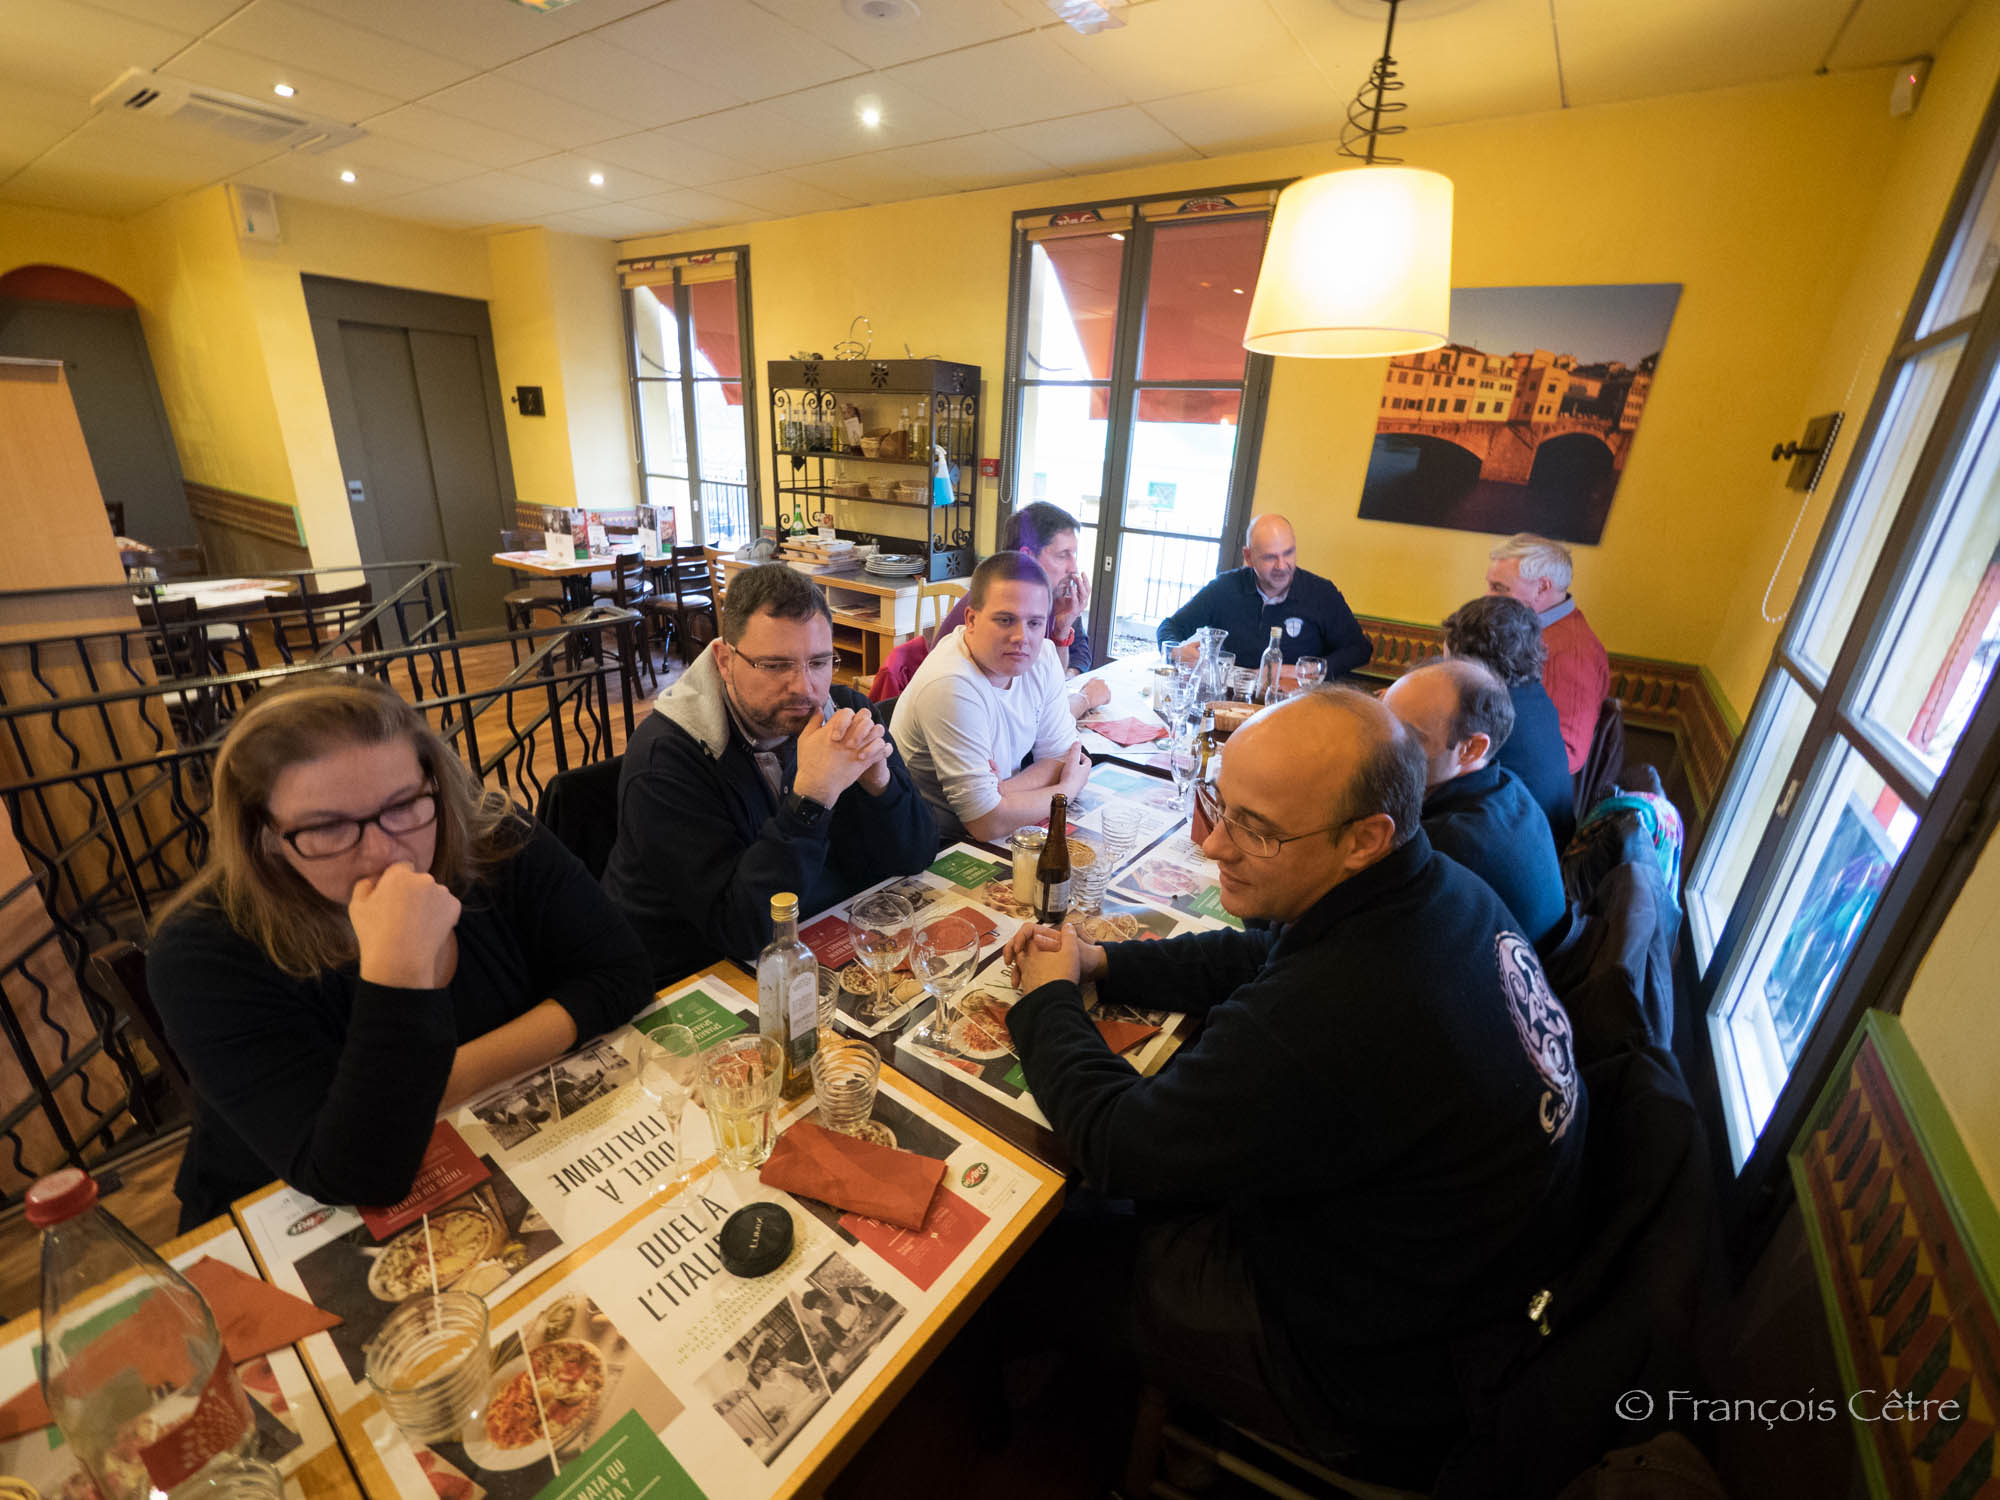 201601_CPS_Formation Joomla Reims_009